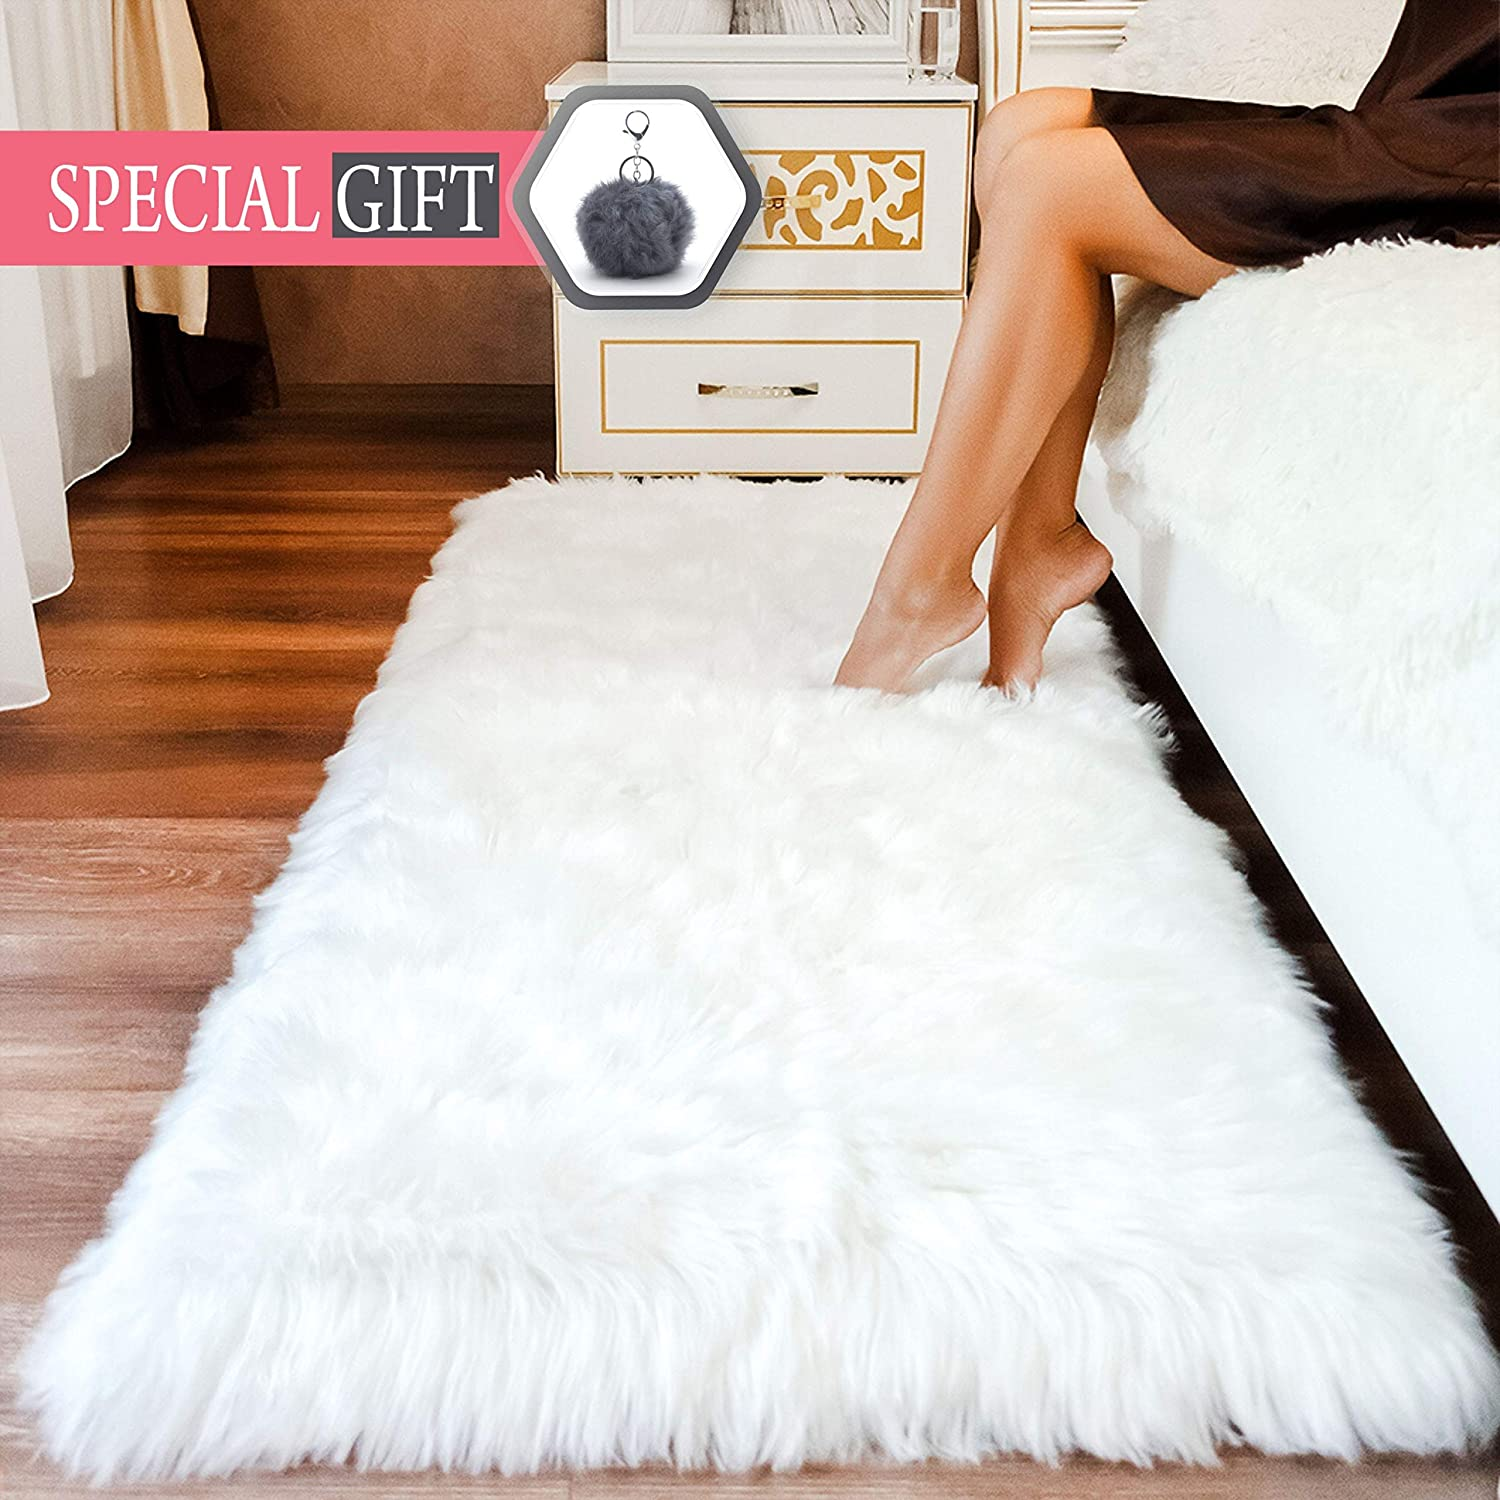 Amazon.com: Premium Faux Sheepskin Fur Rug White - 2.3x5 feet ...